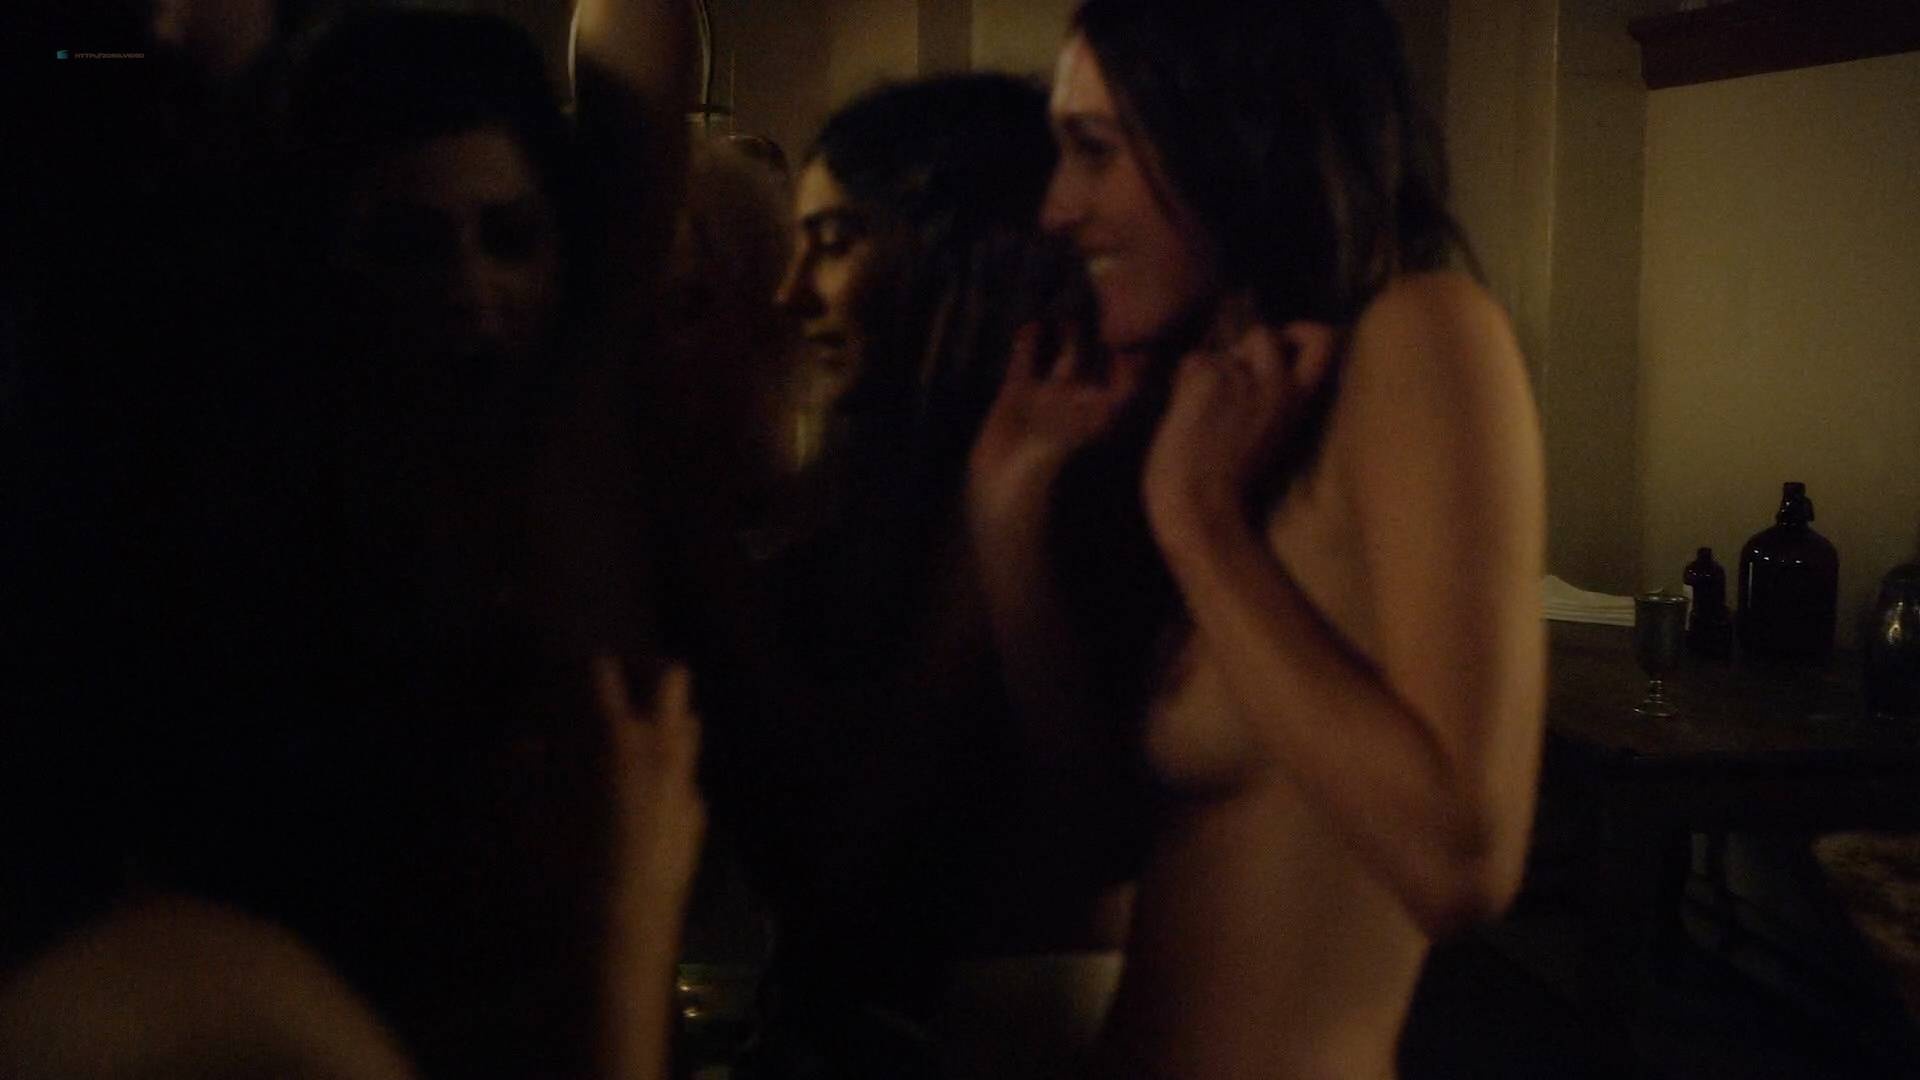 Allie Gallerani nude full frontal Amber Coney, Zoe Bleu, and other's nude too - The Institute (2017) HD 1080p Web (7)